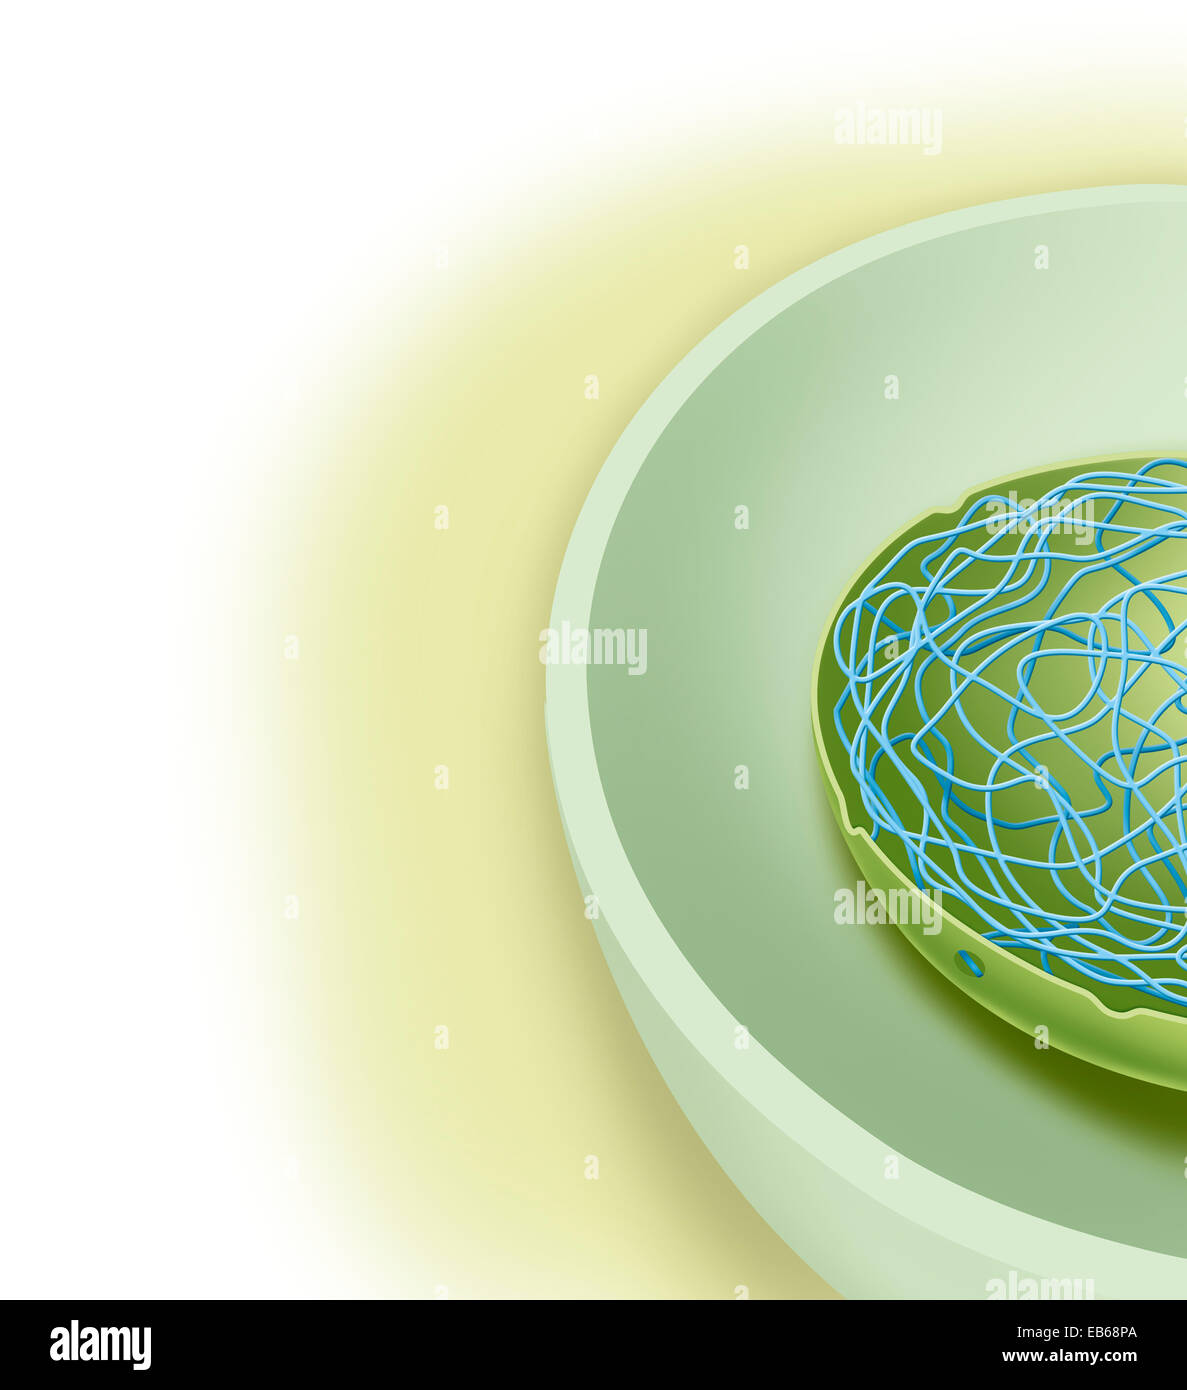 PLANT CELL, DRAWING - Stock Image